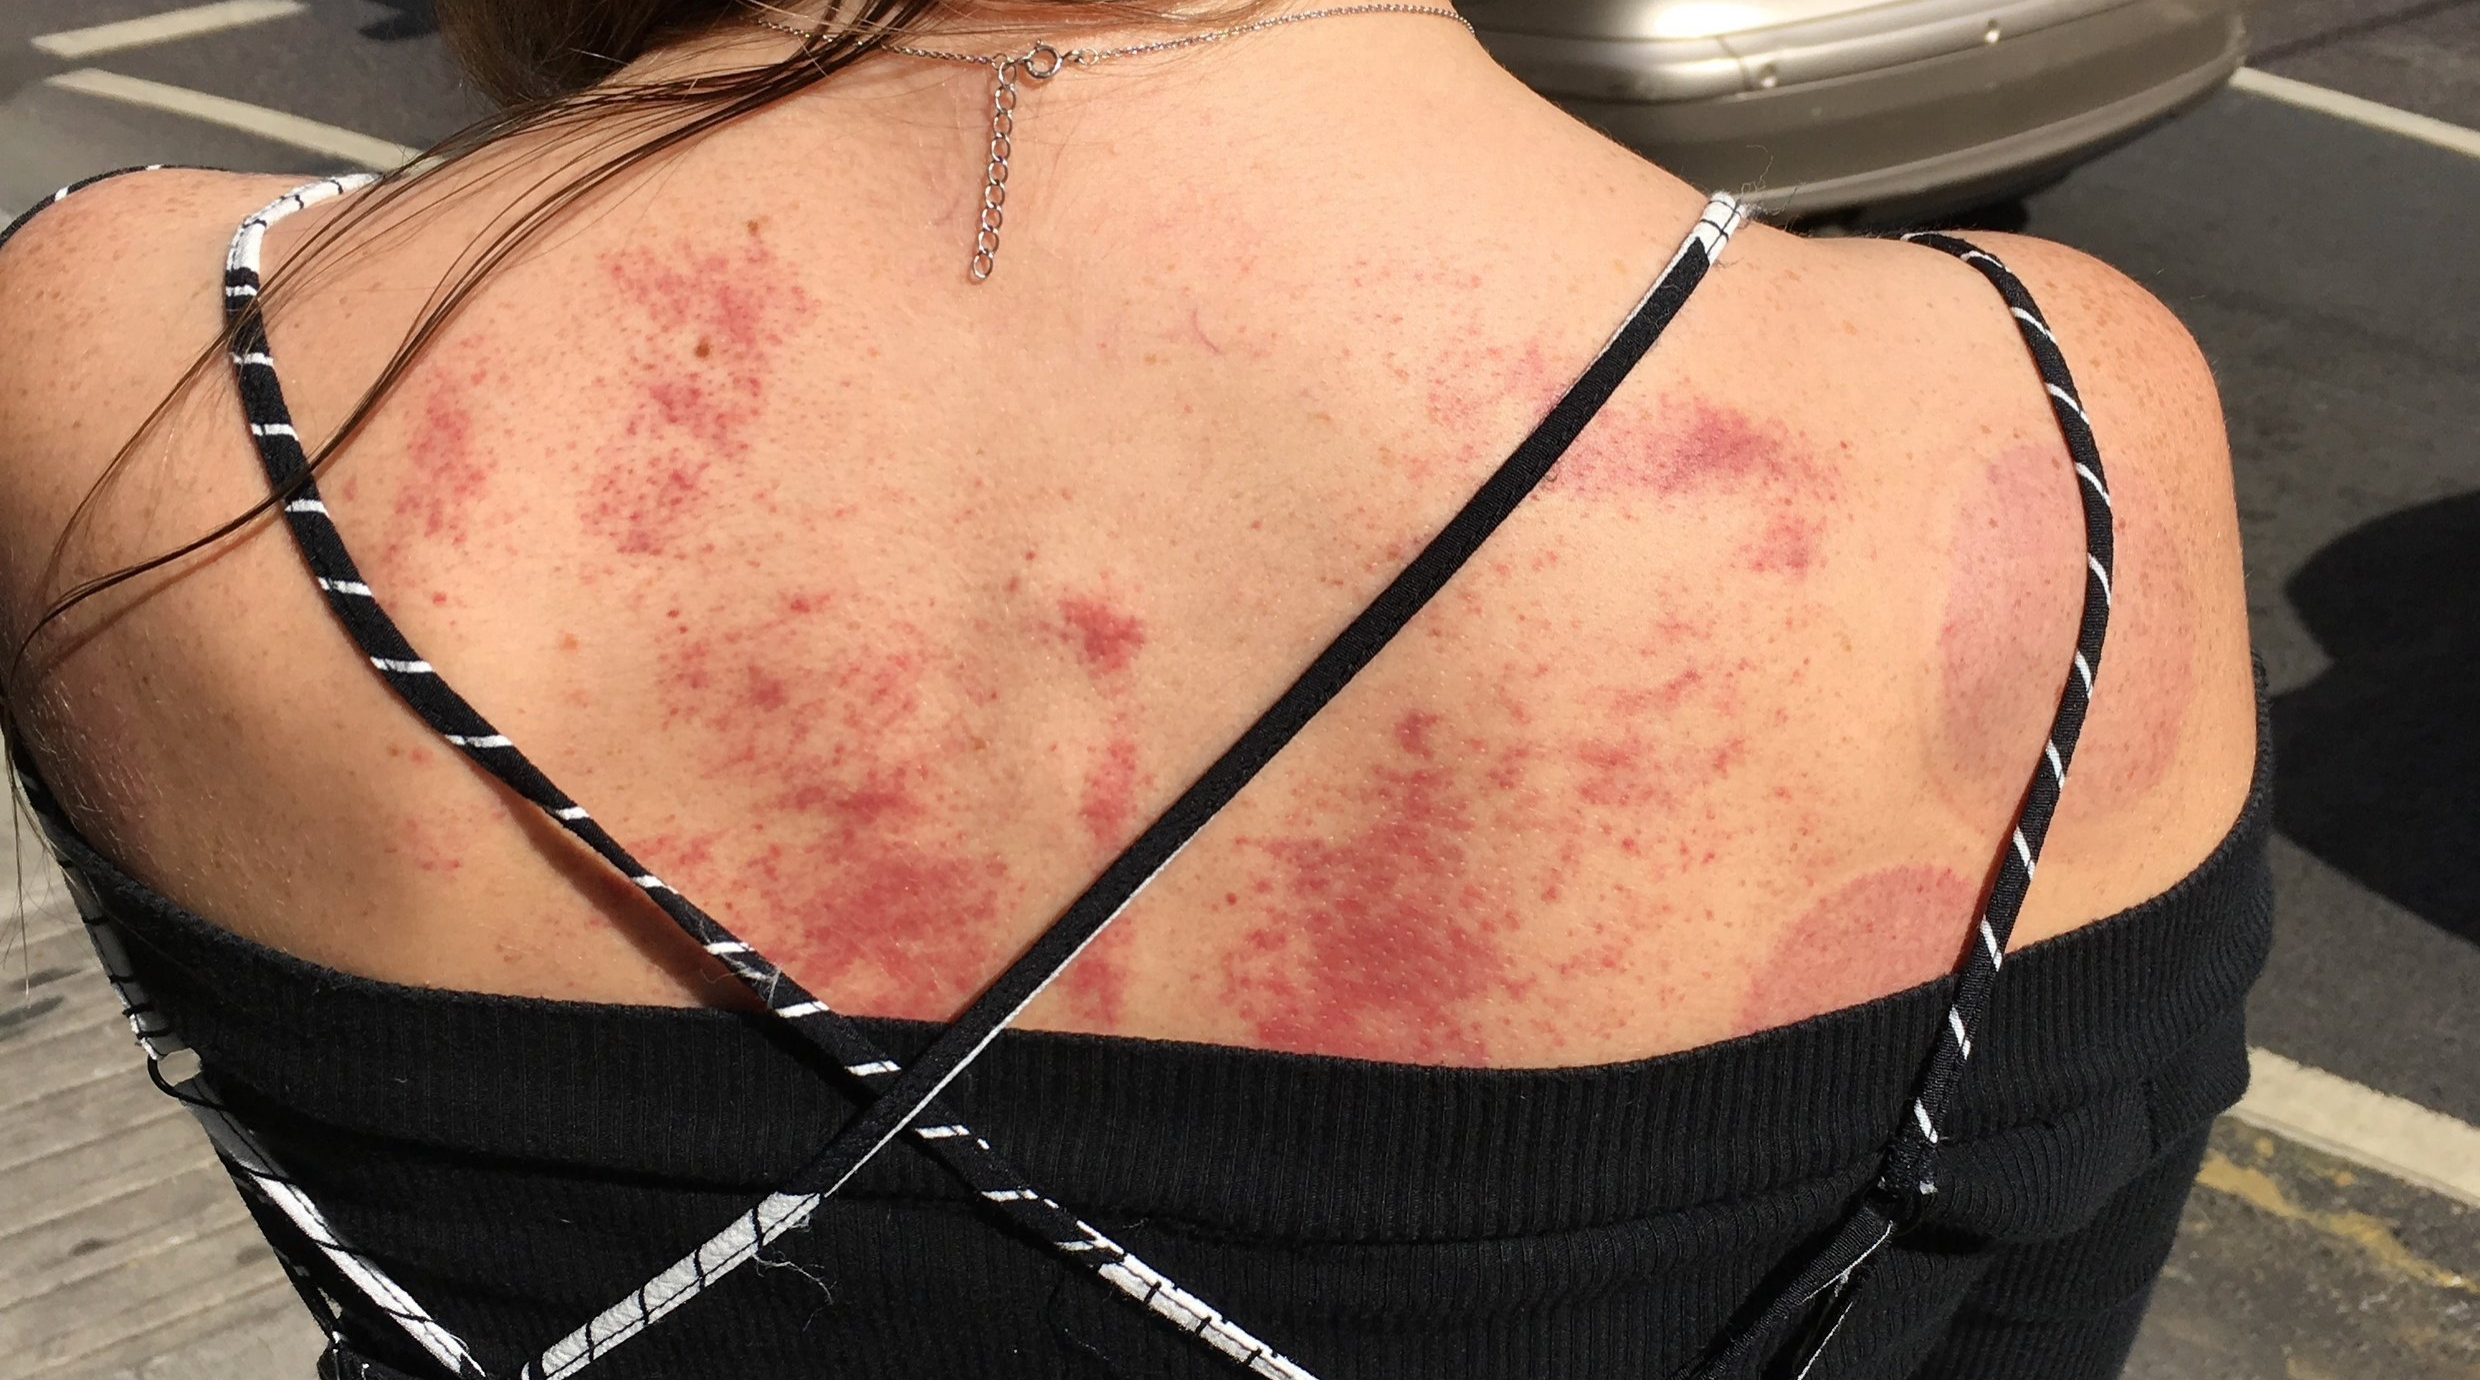 Light marks remain on the skin after a session of Gua Sha or Cupping. These will generally disappear within 3 to 5 days.